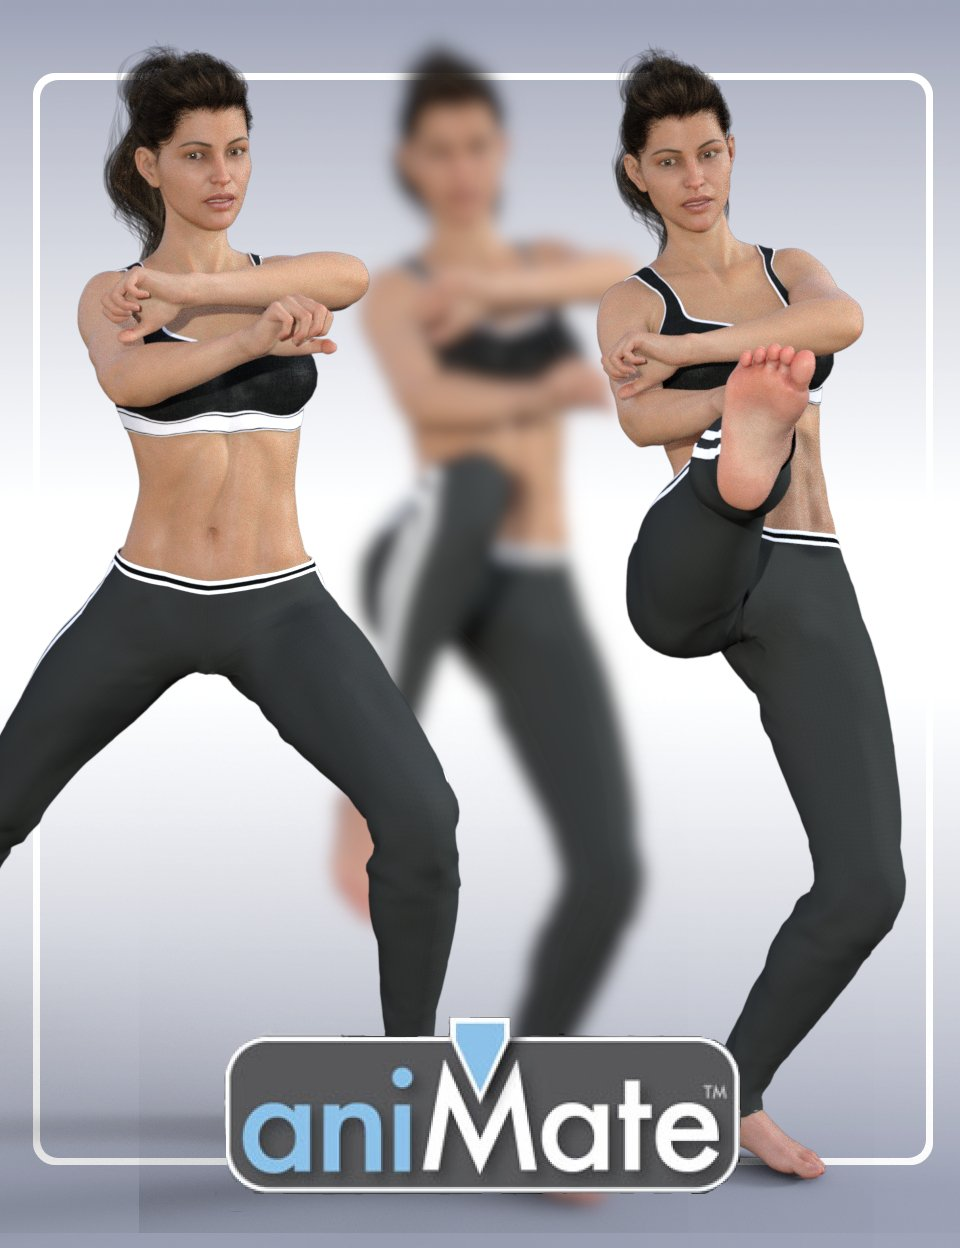 aniMate Martial Arts Combos for Victoria 8 by: GoFigure, 3D Models by Daz 3D